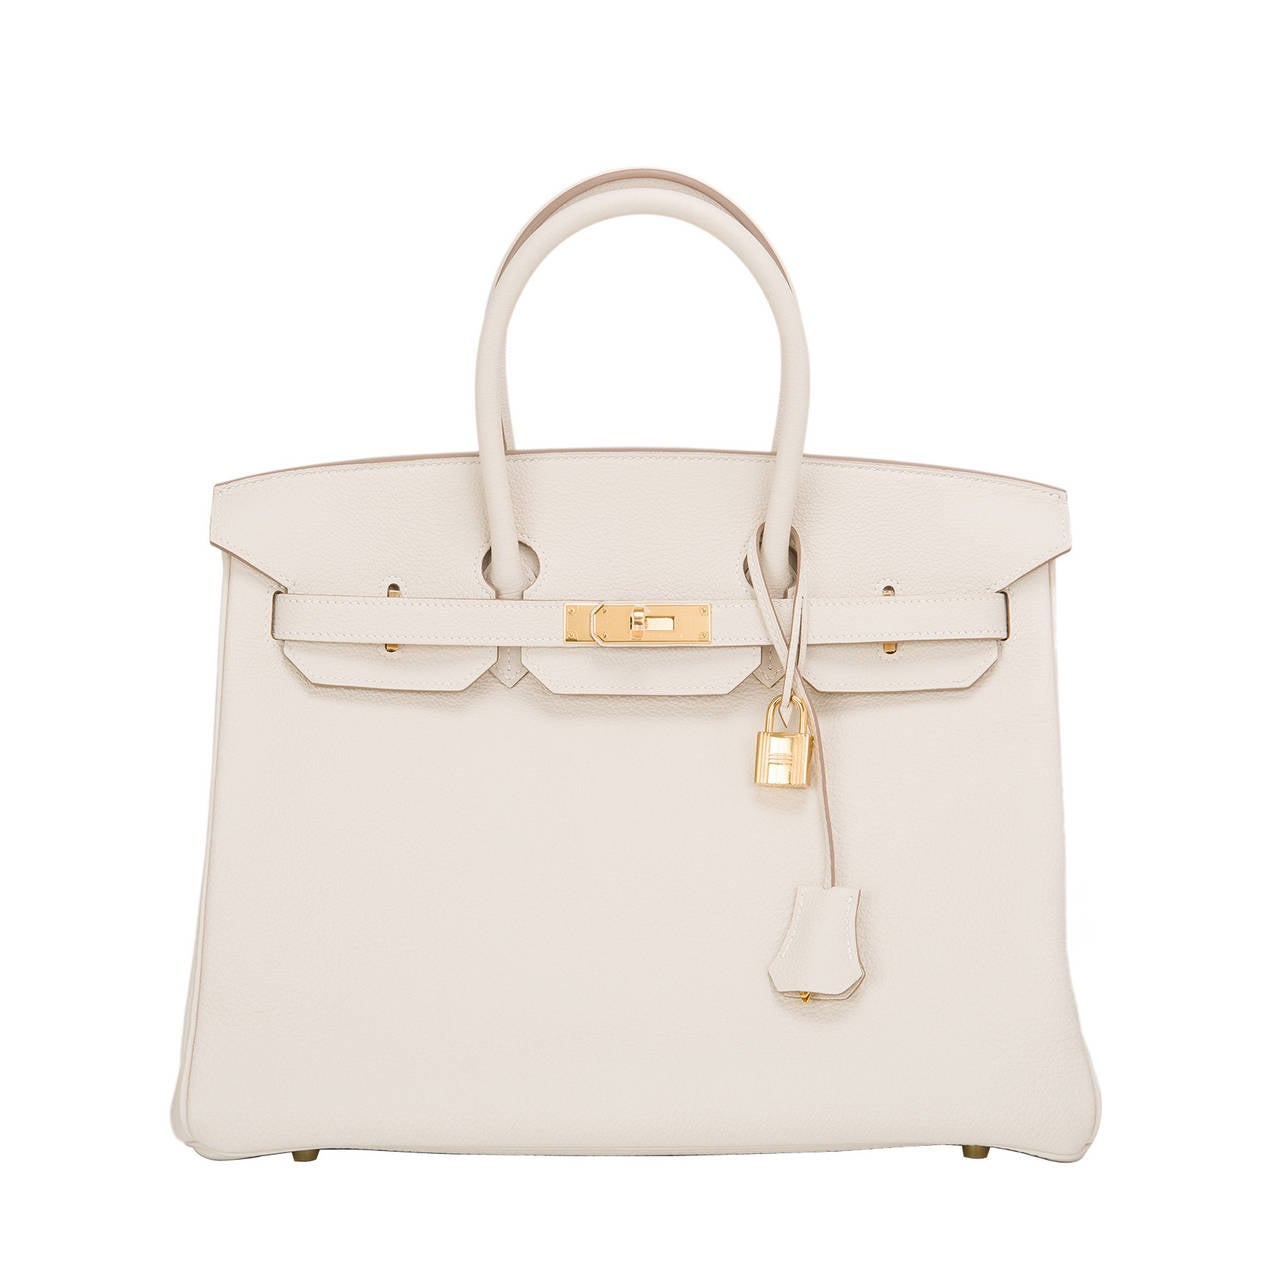 white hermes bag - Hermes Craie Togo Birkin 35cm Gold Hardware For Sale at 1stdibs